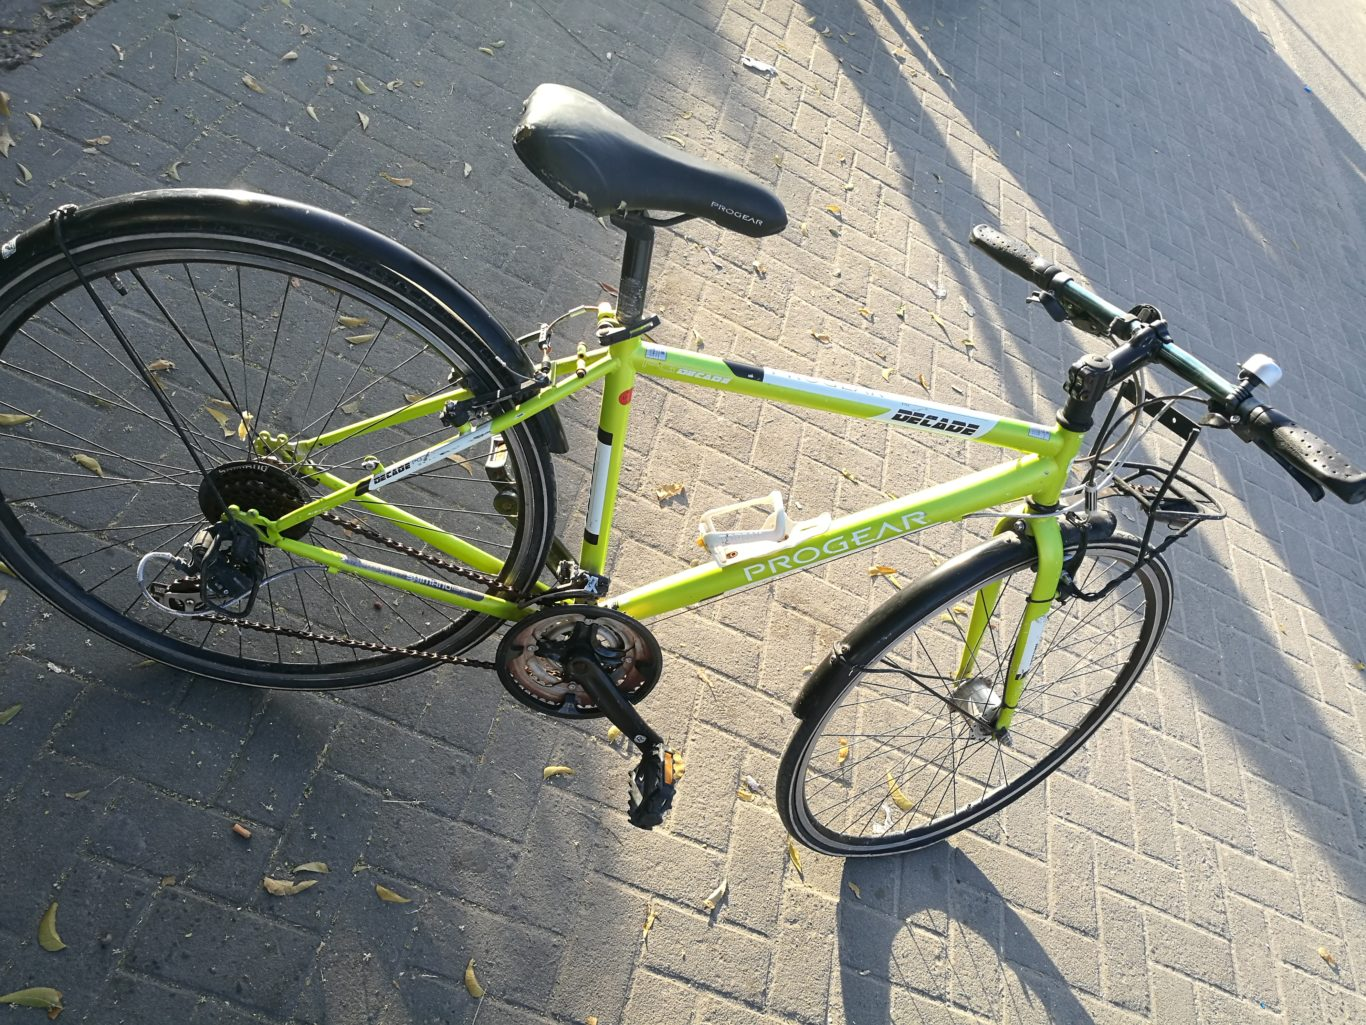 IMPORTED SECOND HAND BICYCLE